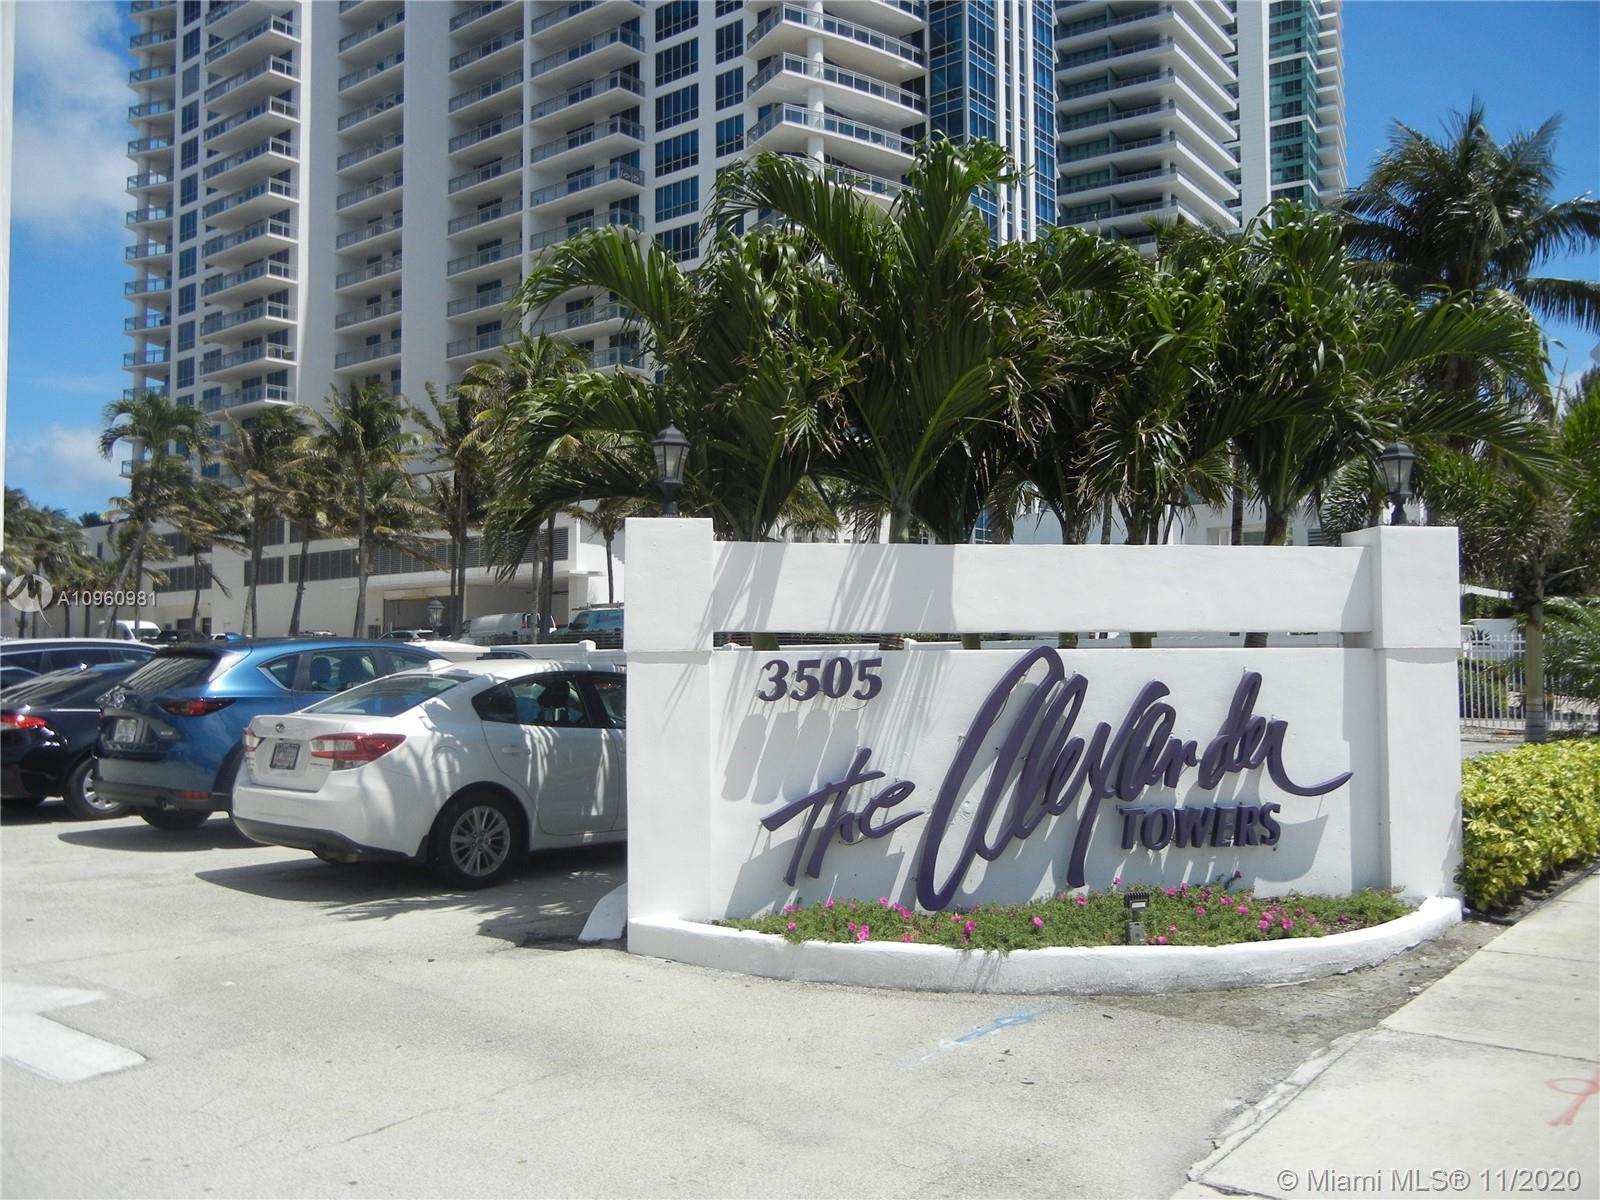 Beautiful condo 1 bedroom 1 1/2 bathroom. Amazing intracoastal view flexible to use as an investment